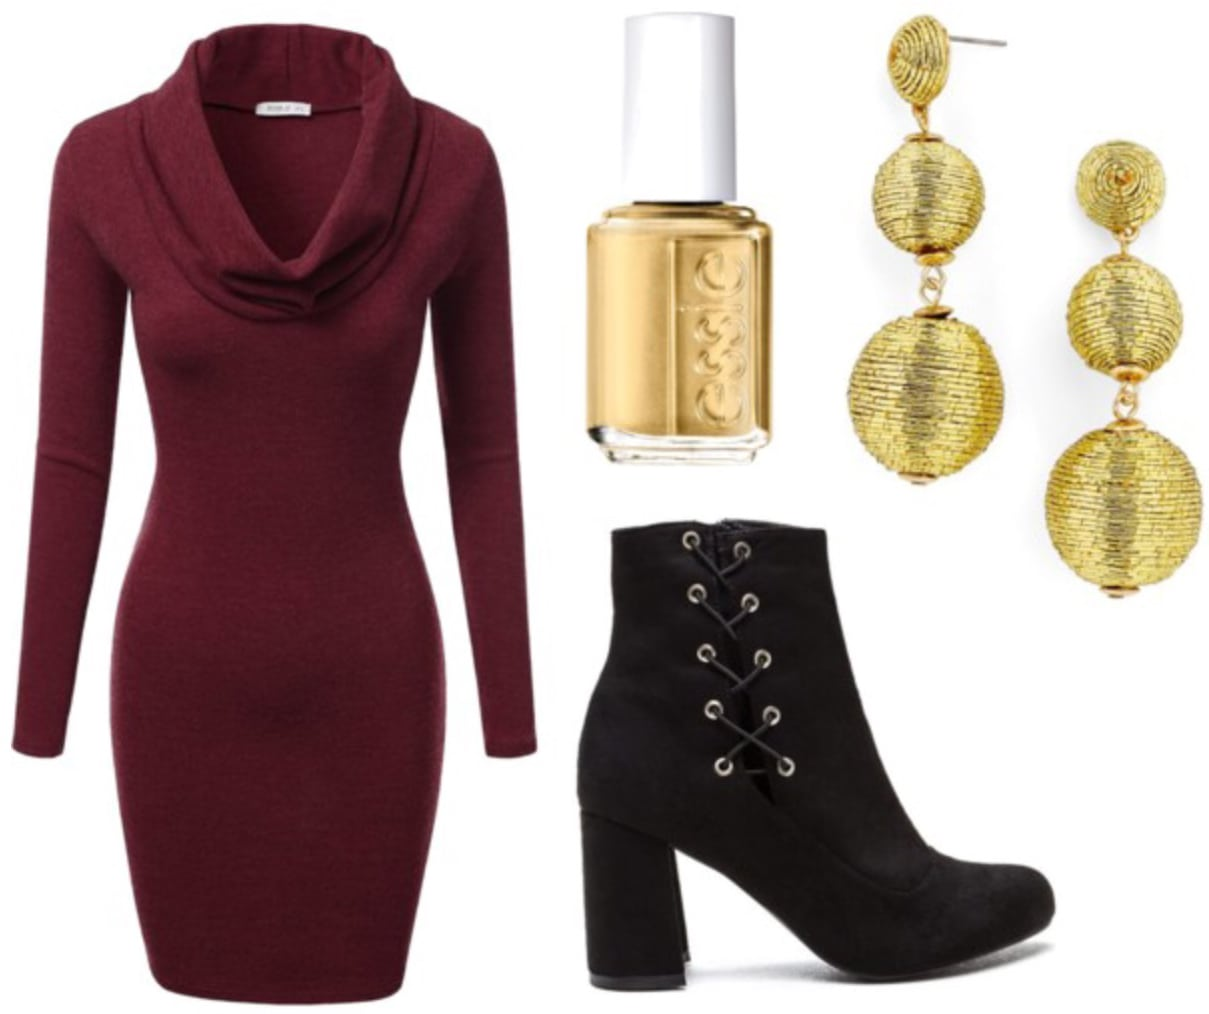 How the Grinch Stole Christmas Outfit 1: Cowl neck sweater dress, lace-up boots, statement earrings, gold nail polish